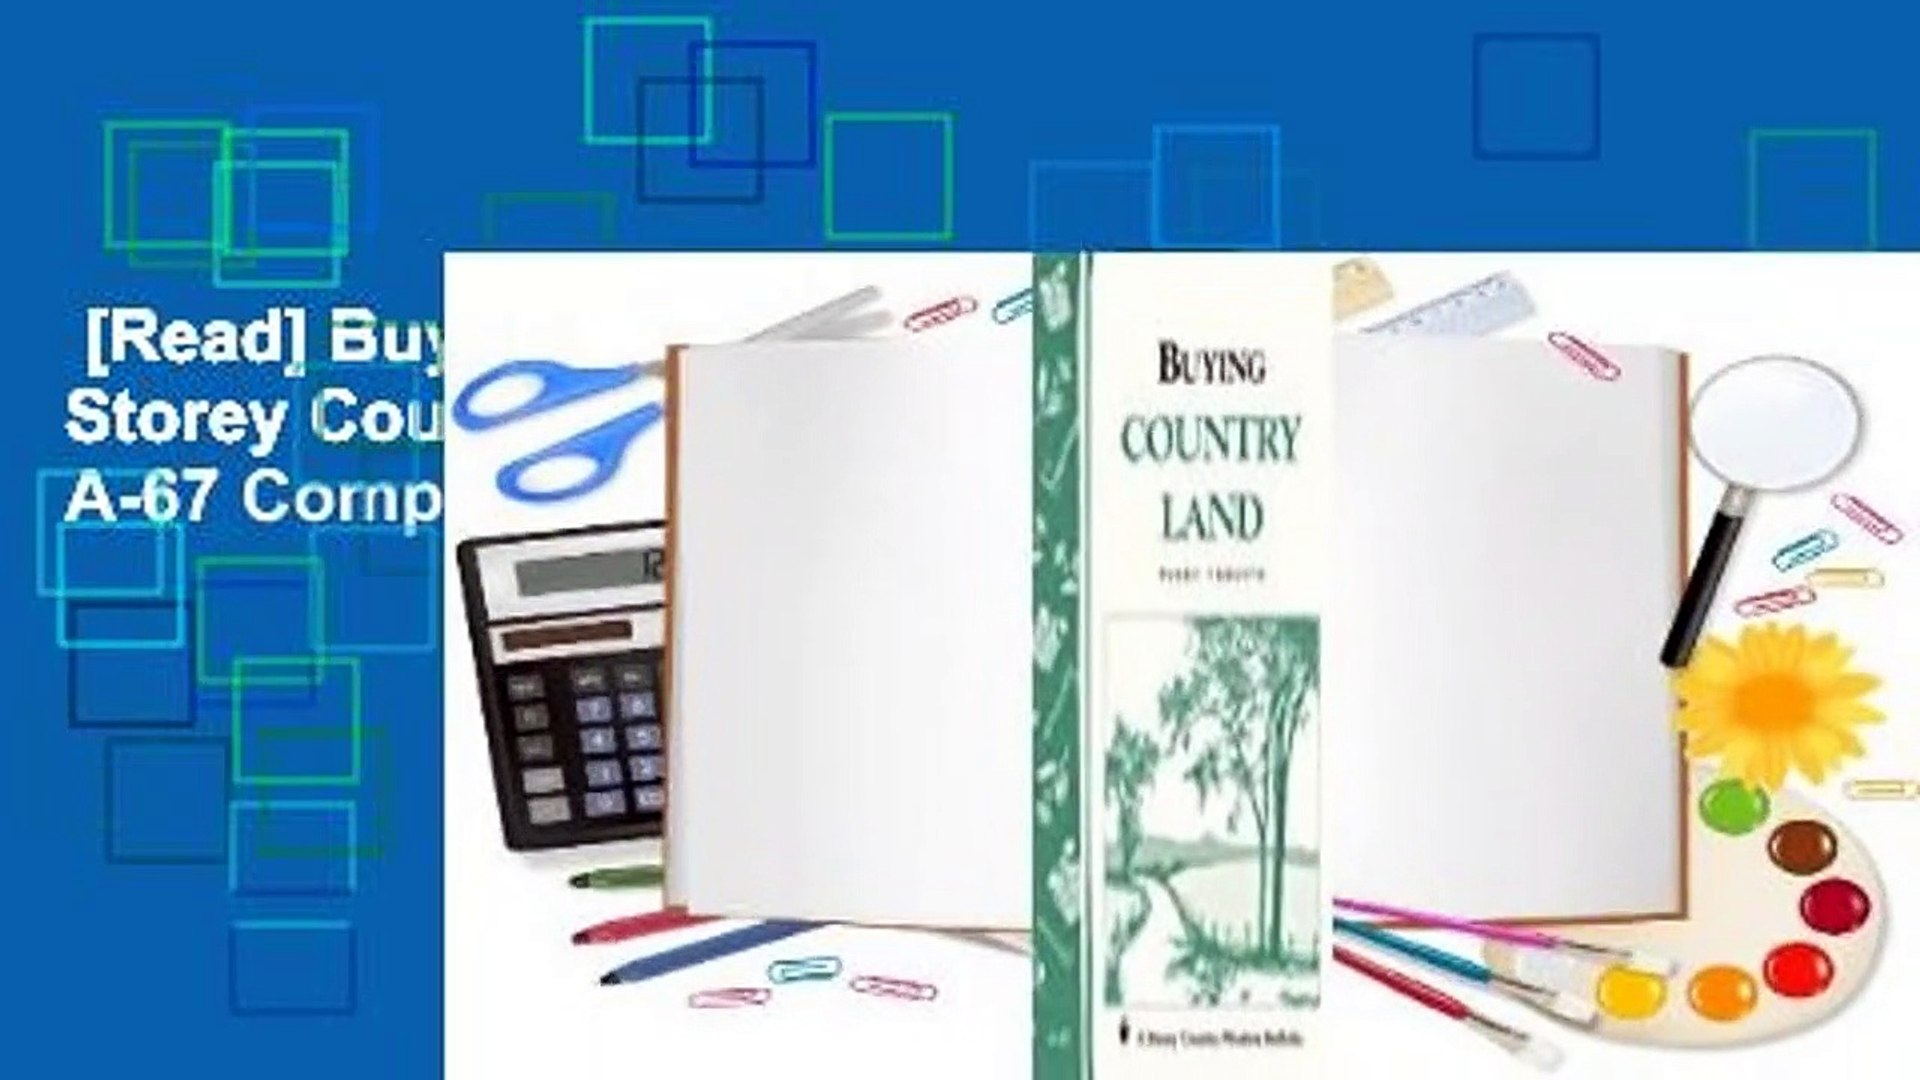 [Read] Buying Country Land: Storey Country Wisdom Bulletin A-67 Complete